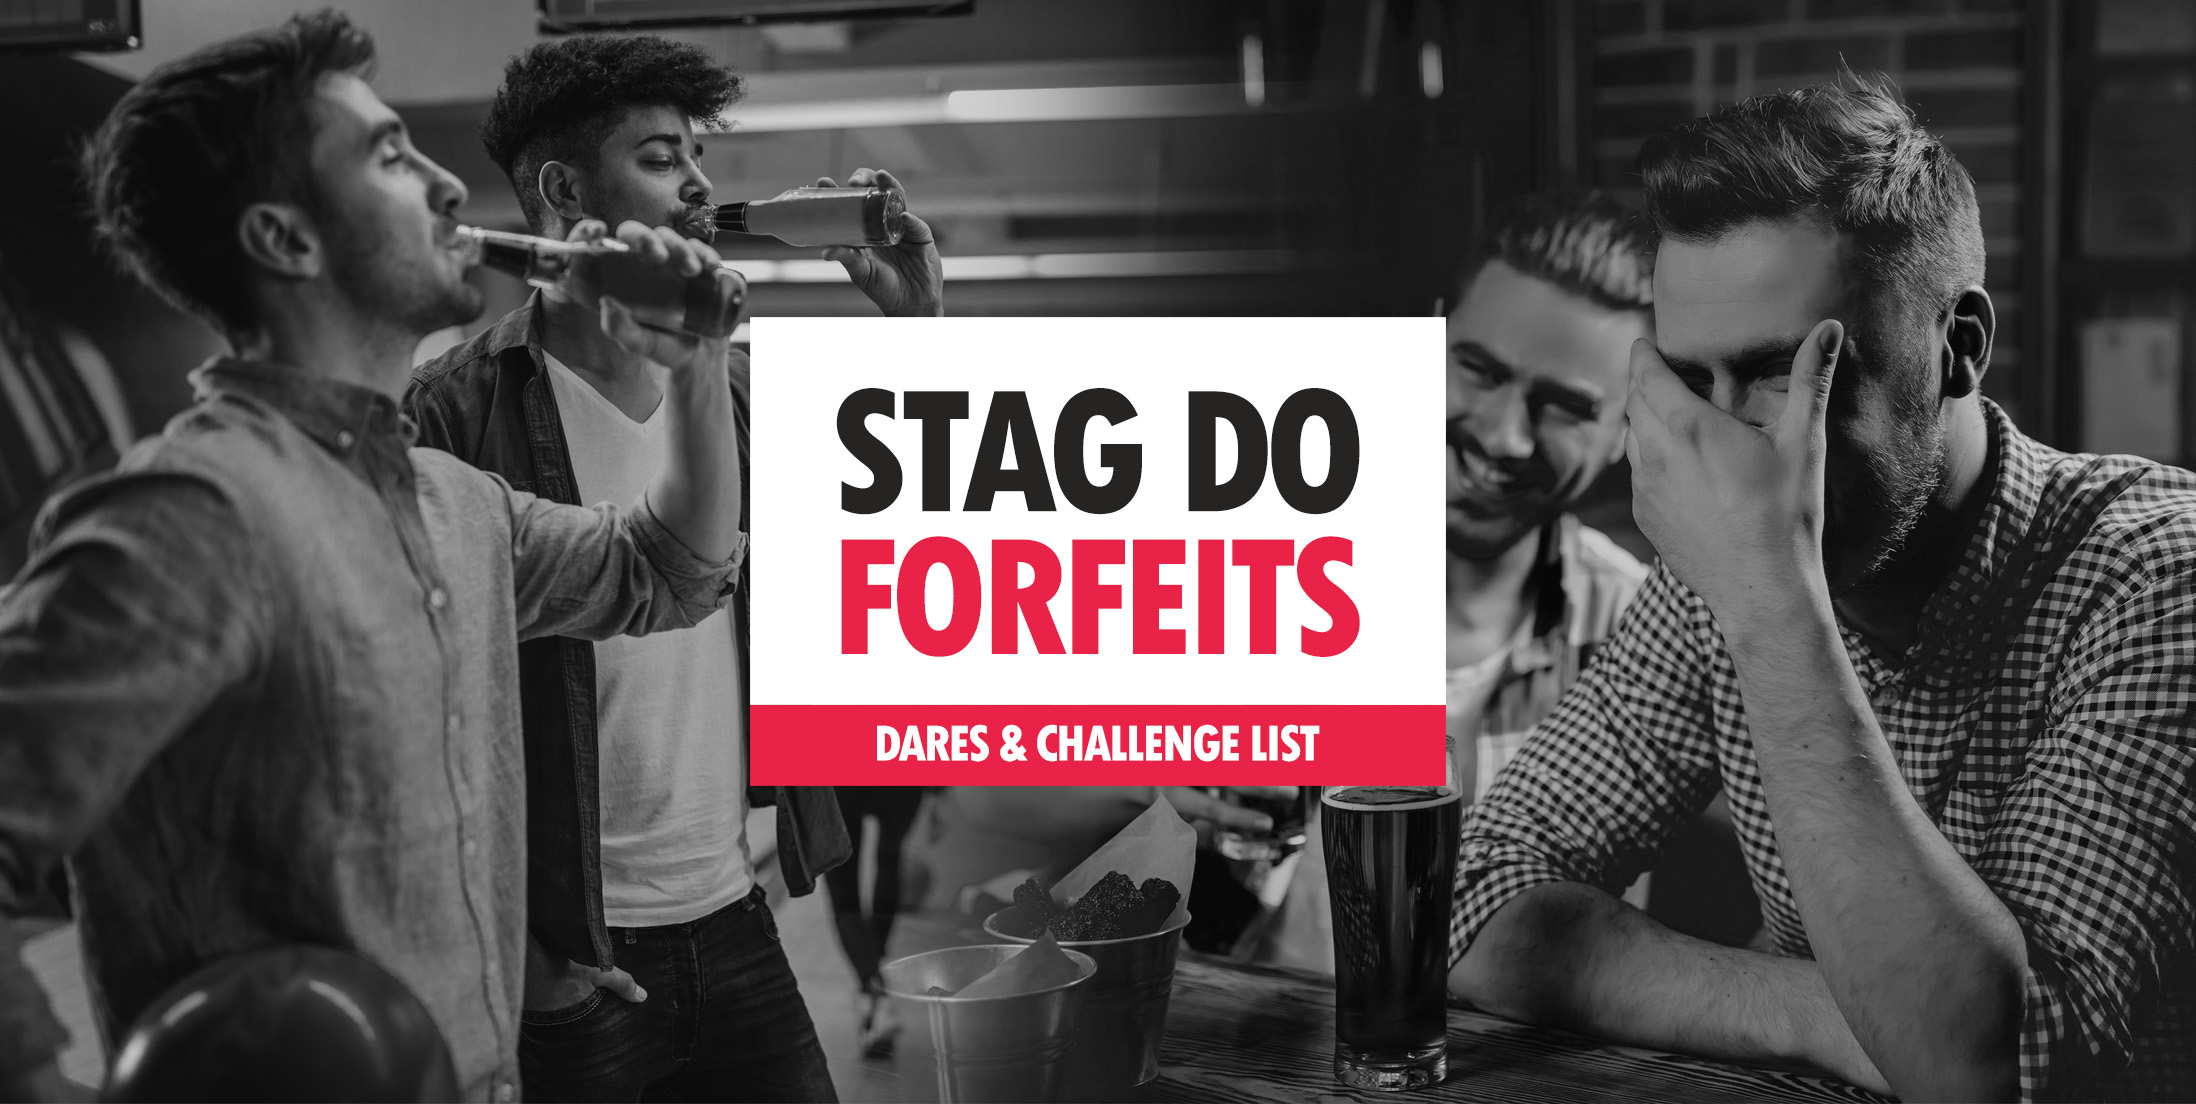 Stag Do Challenges, Dares & Forfeits